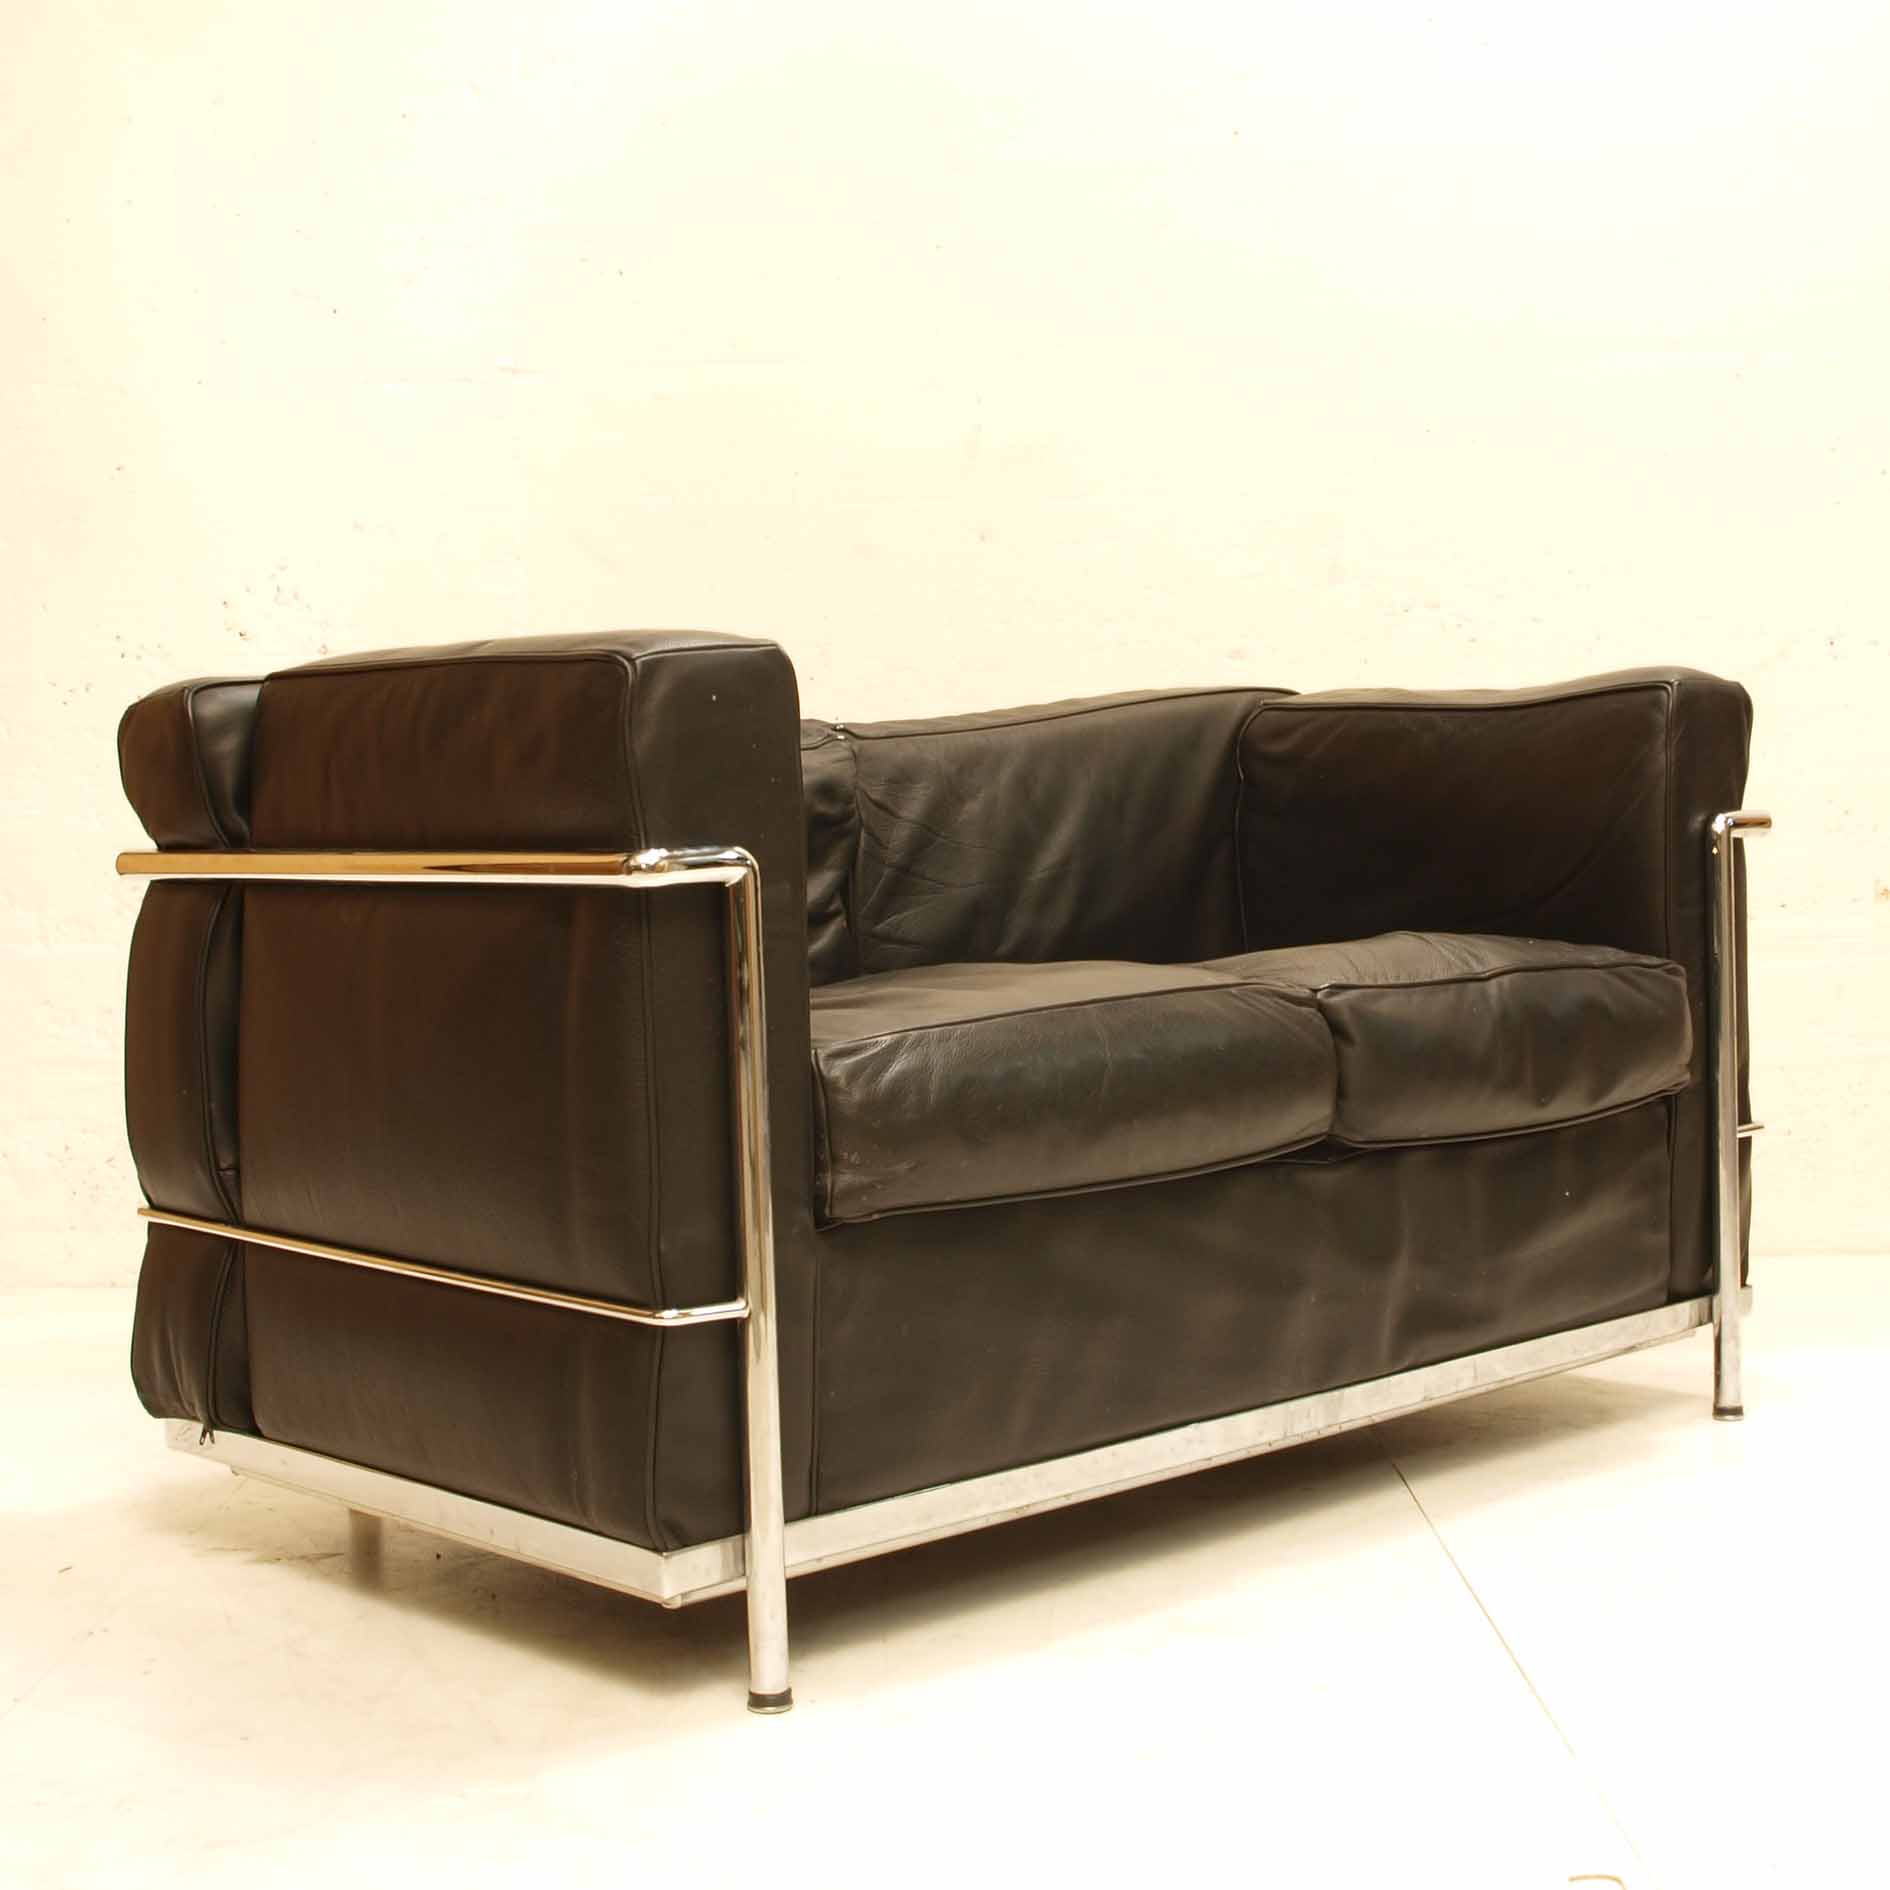 sofa corbusier kopie lc2 schwarzes leder m bel z rich vintagem bel. Black Bedroom Furniture Sets. Home Design Ideas